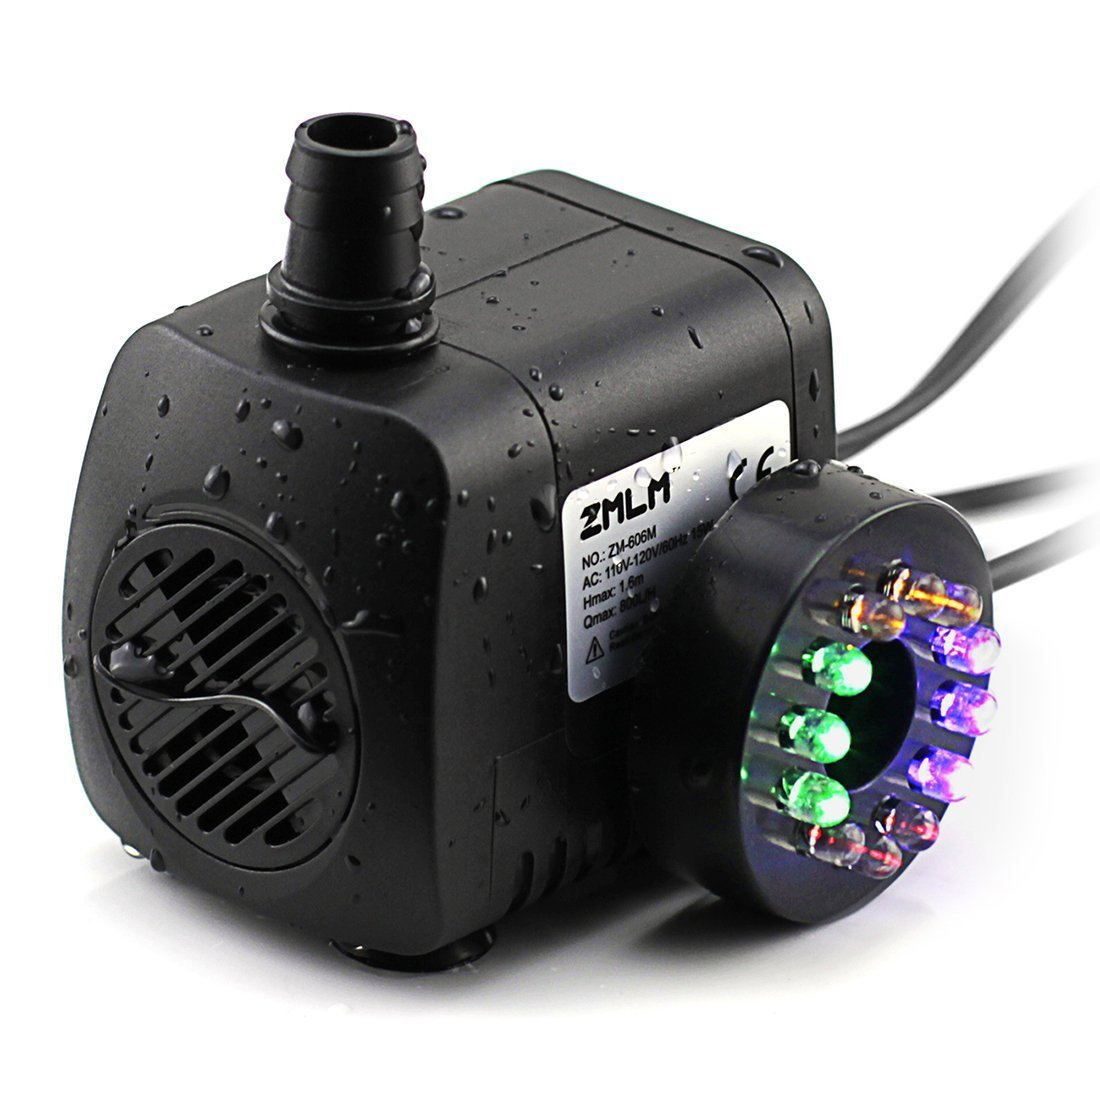 ZMLM Submersible Water Pump (15W 800L/H) with Colorful LED Light for Indoor Fountain, Pool, Garden, Pond, Fish Tank, Aquarium, Hydroponic, Statuary by ZMLM